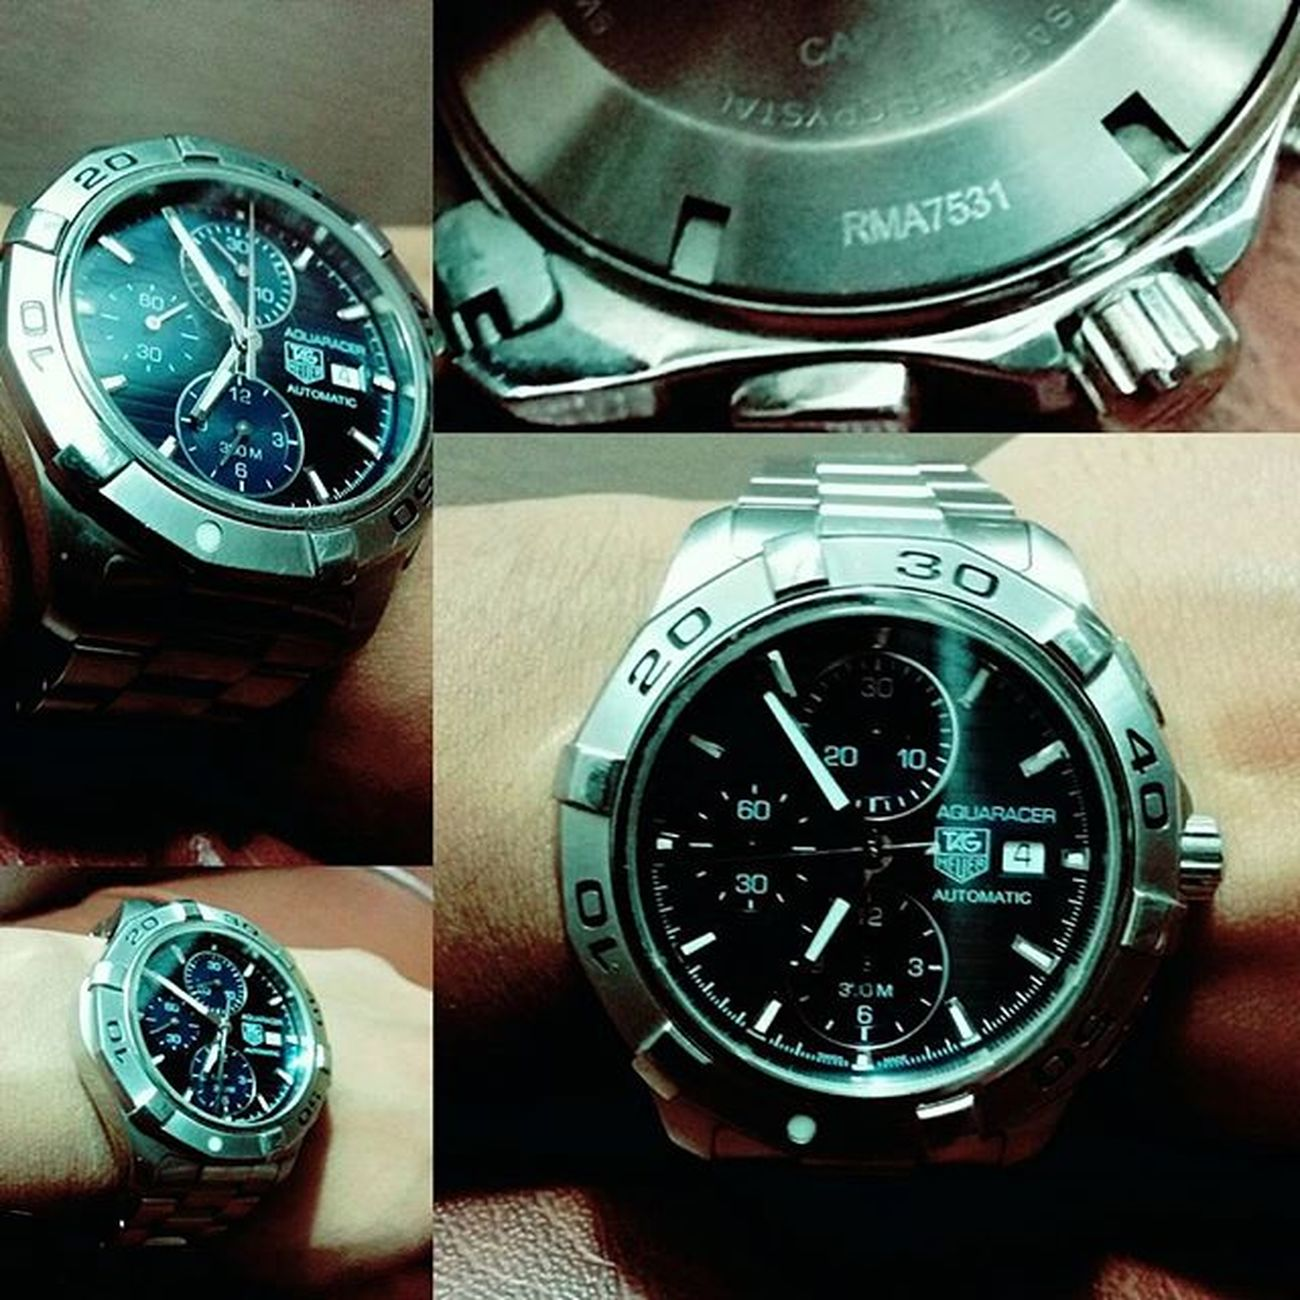 My_new Taghuer Watch_collection No. 3